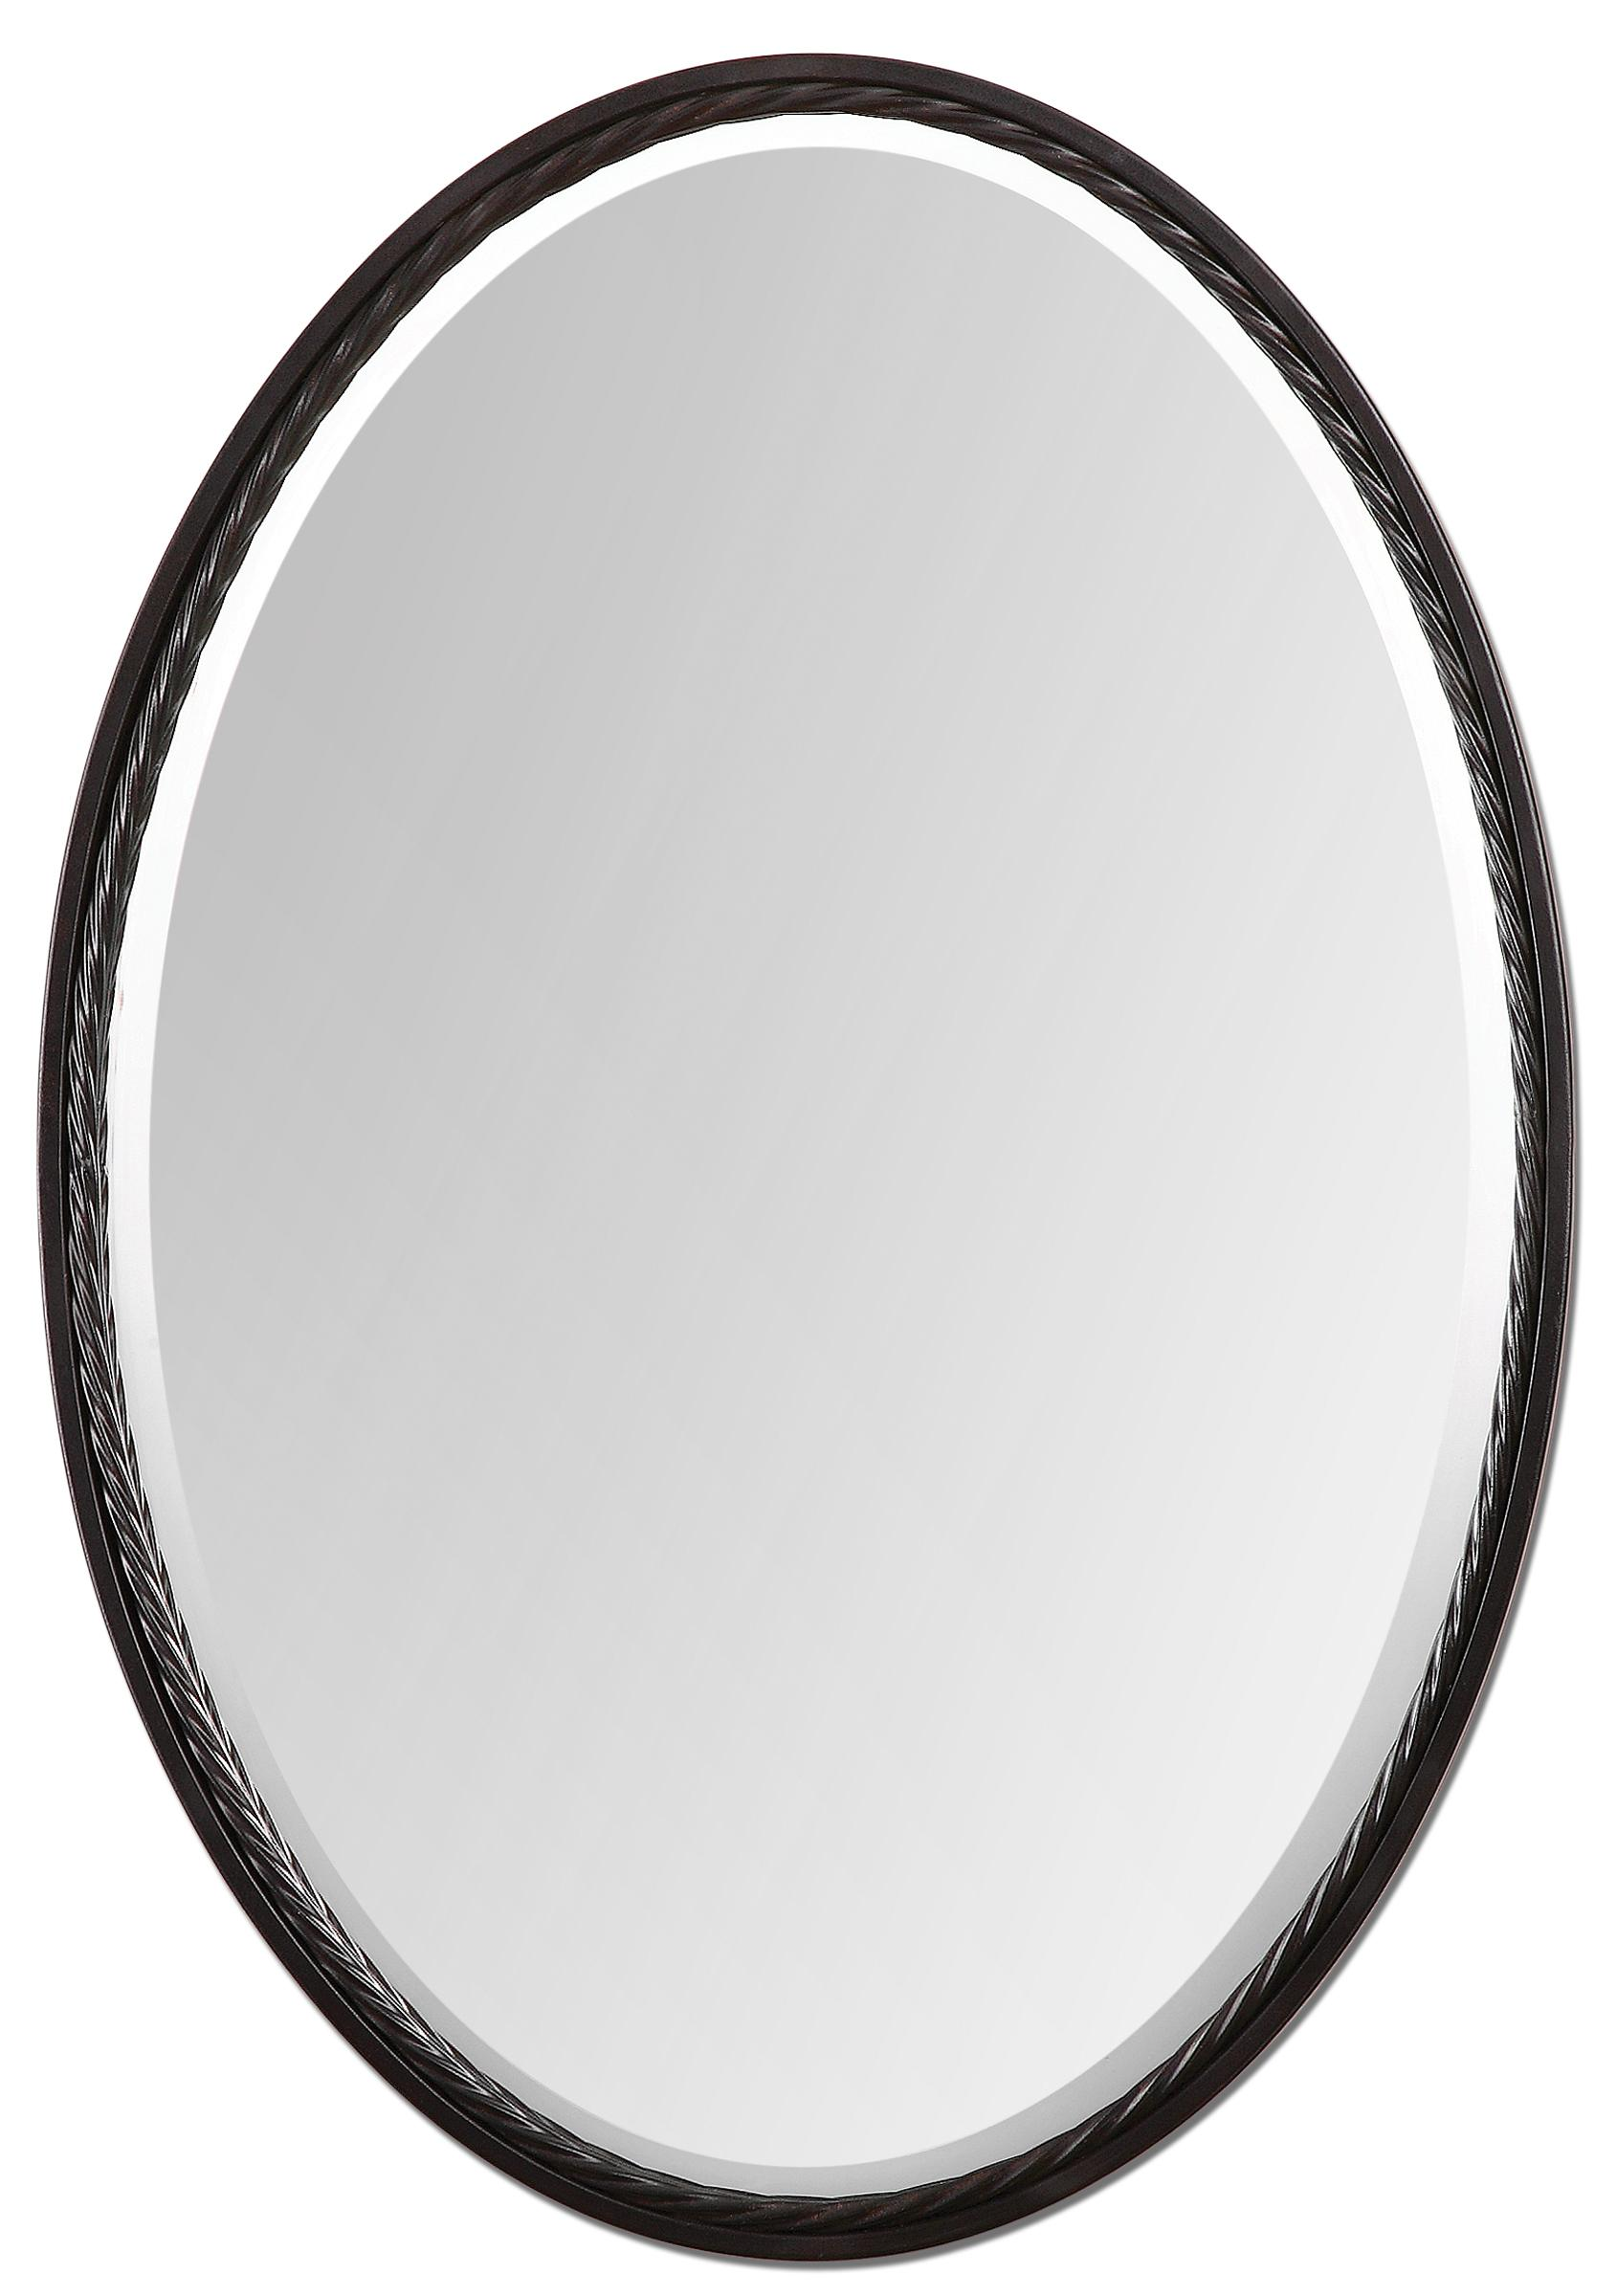 Uttermost Mirrors Casalina Oil Rubbed Bronze - Item Number: 01116